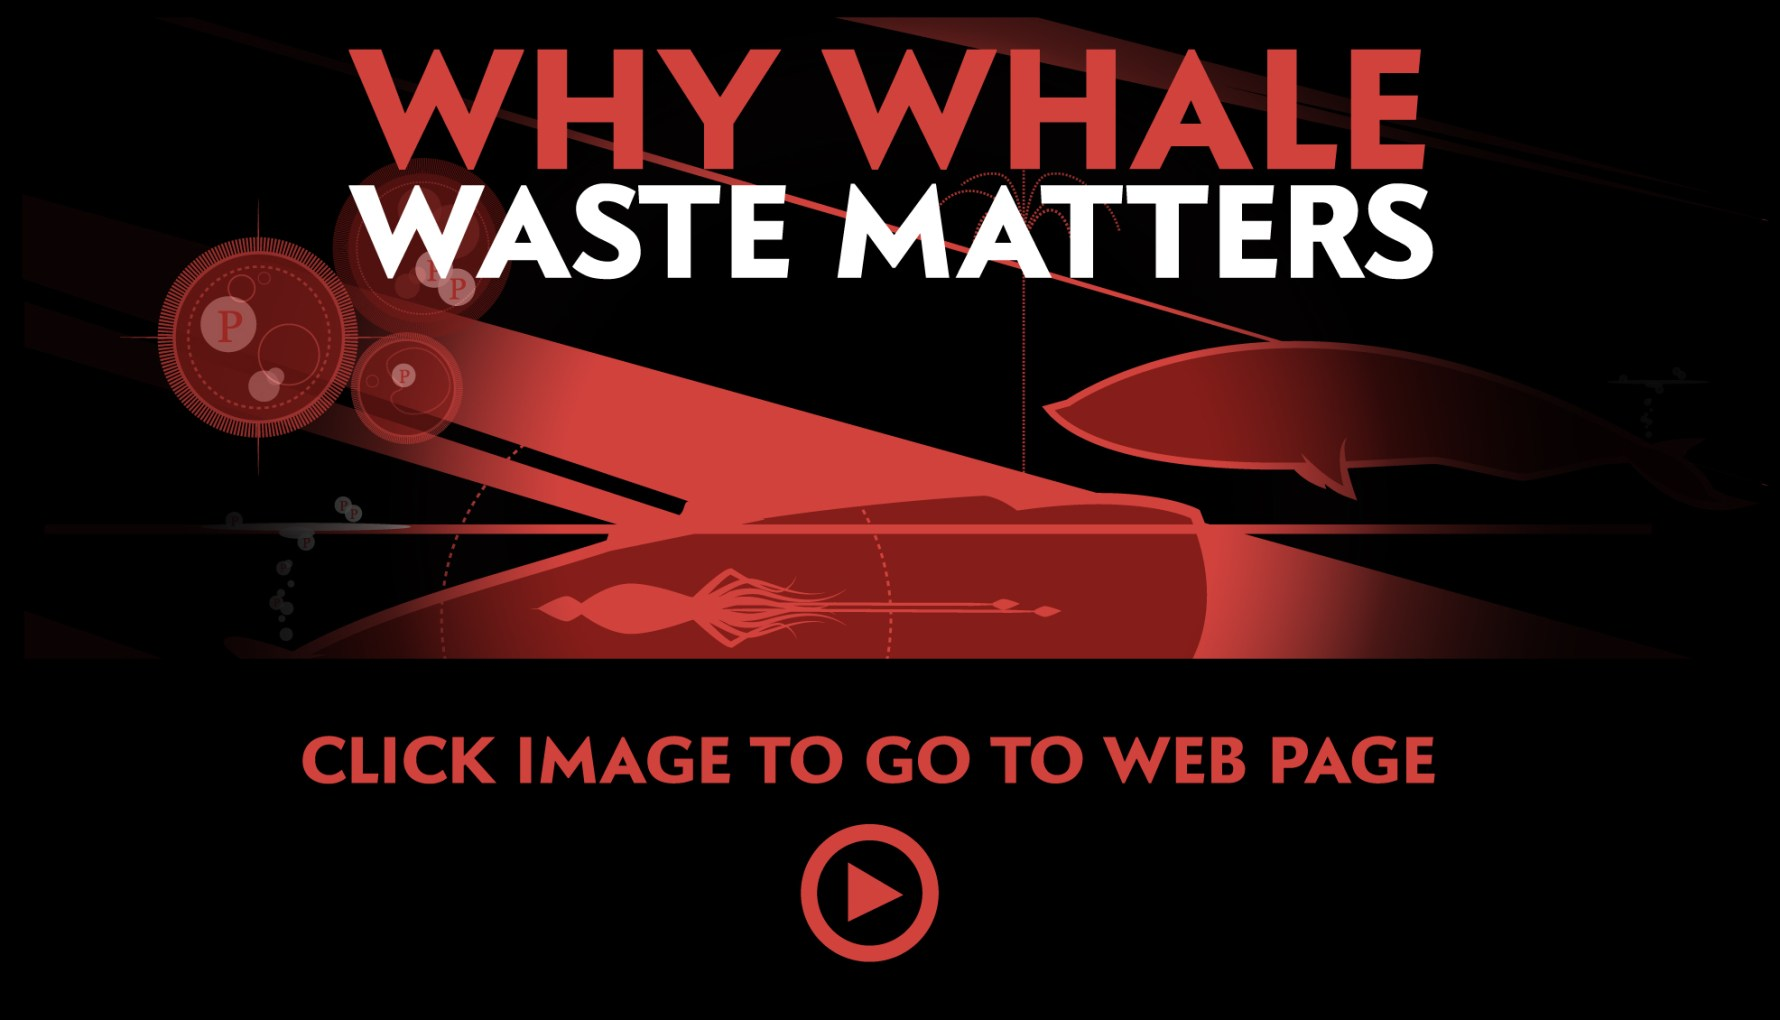 SCIENTIFIC AMERICAN WHALE LINK